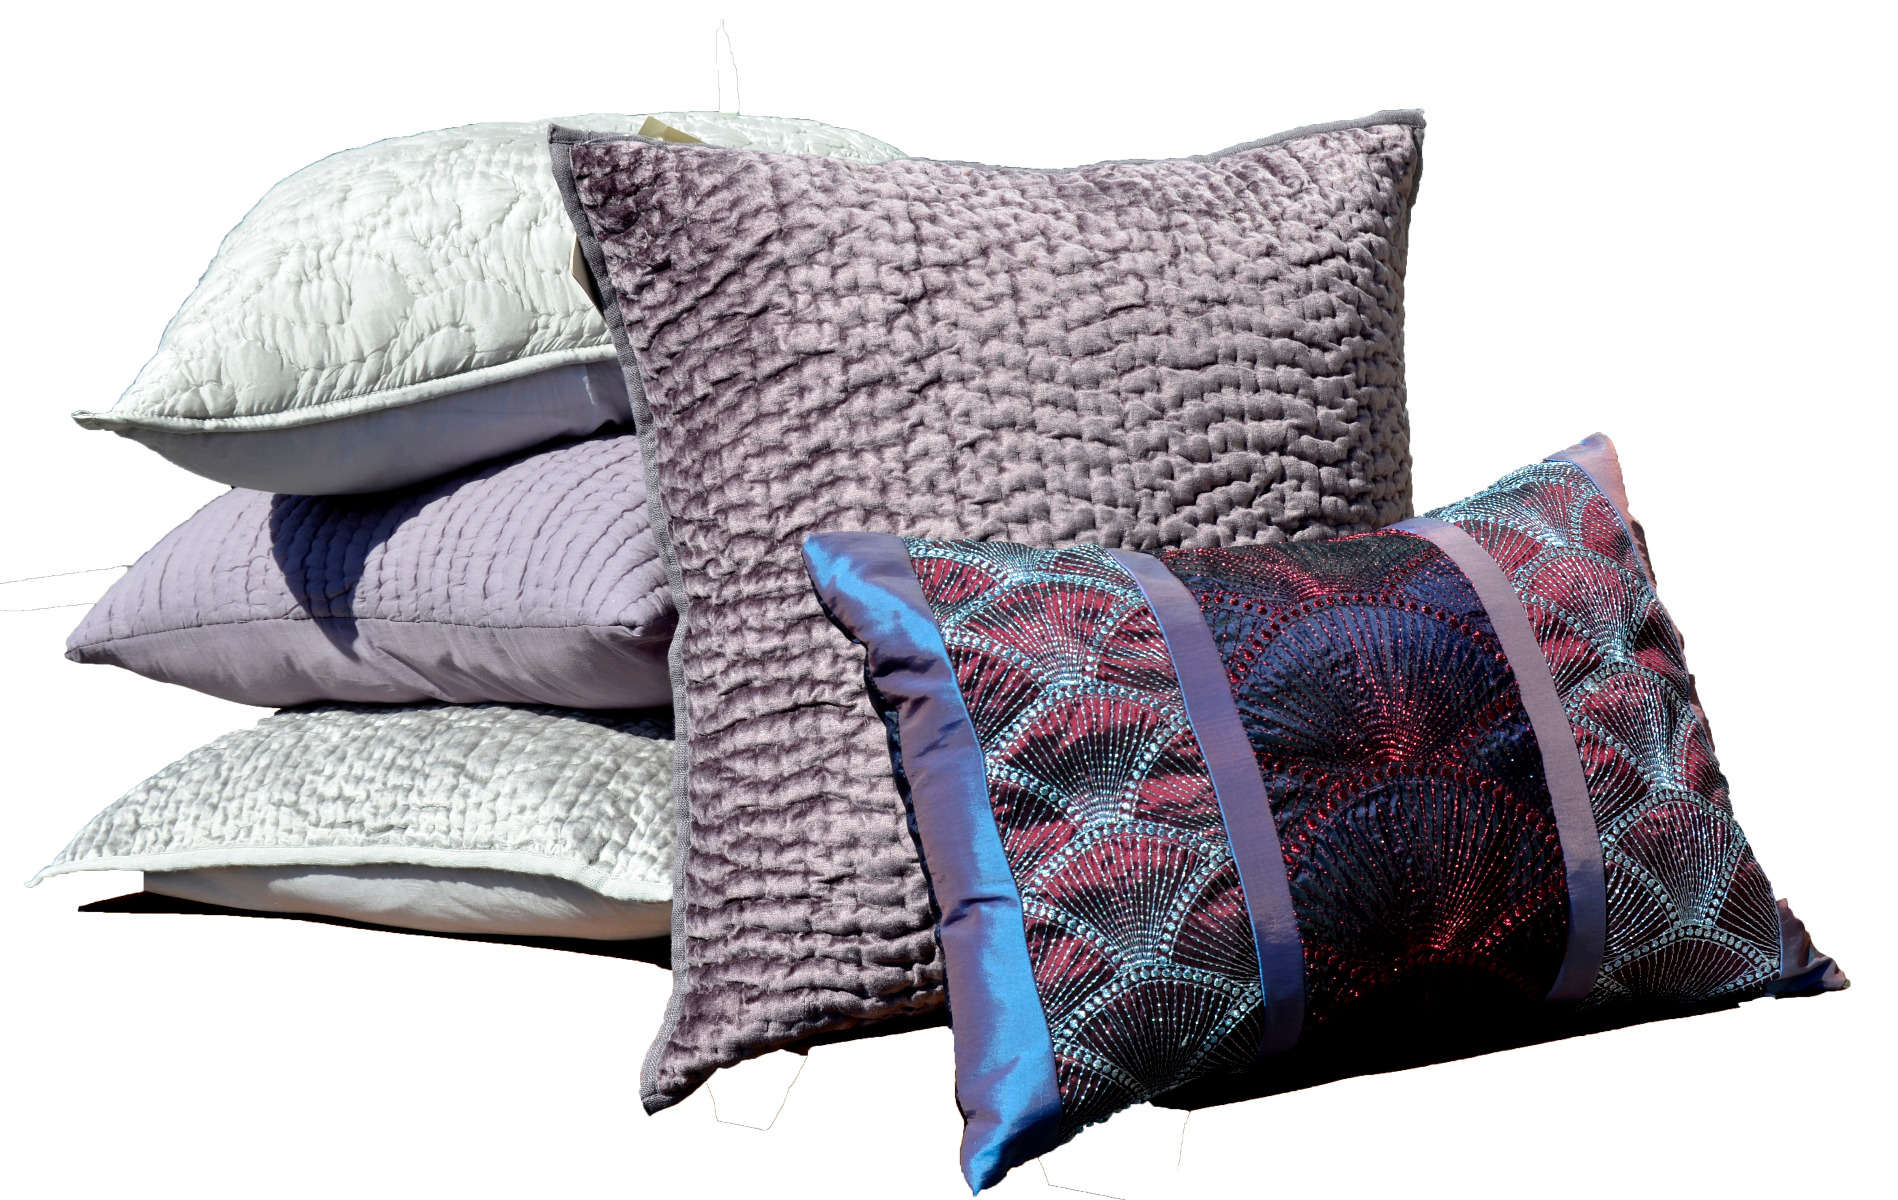 luxury cushions at wbfurniture in Clitheroe